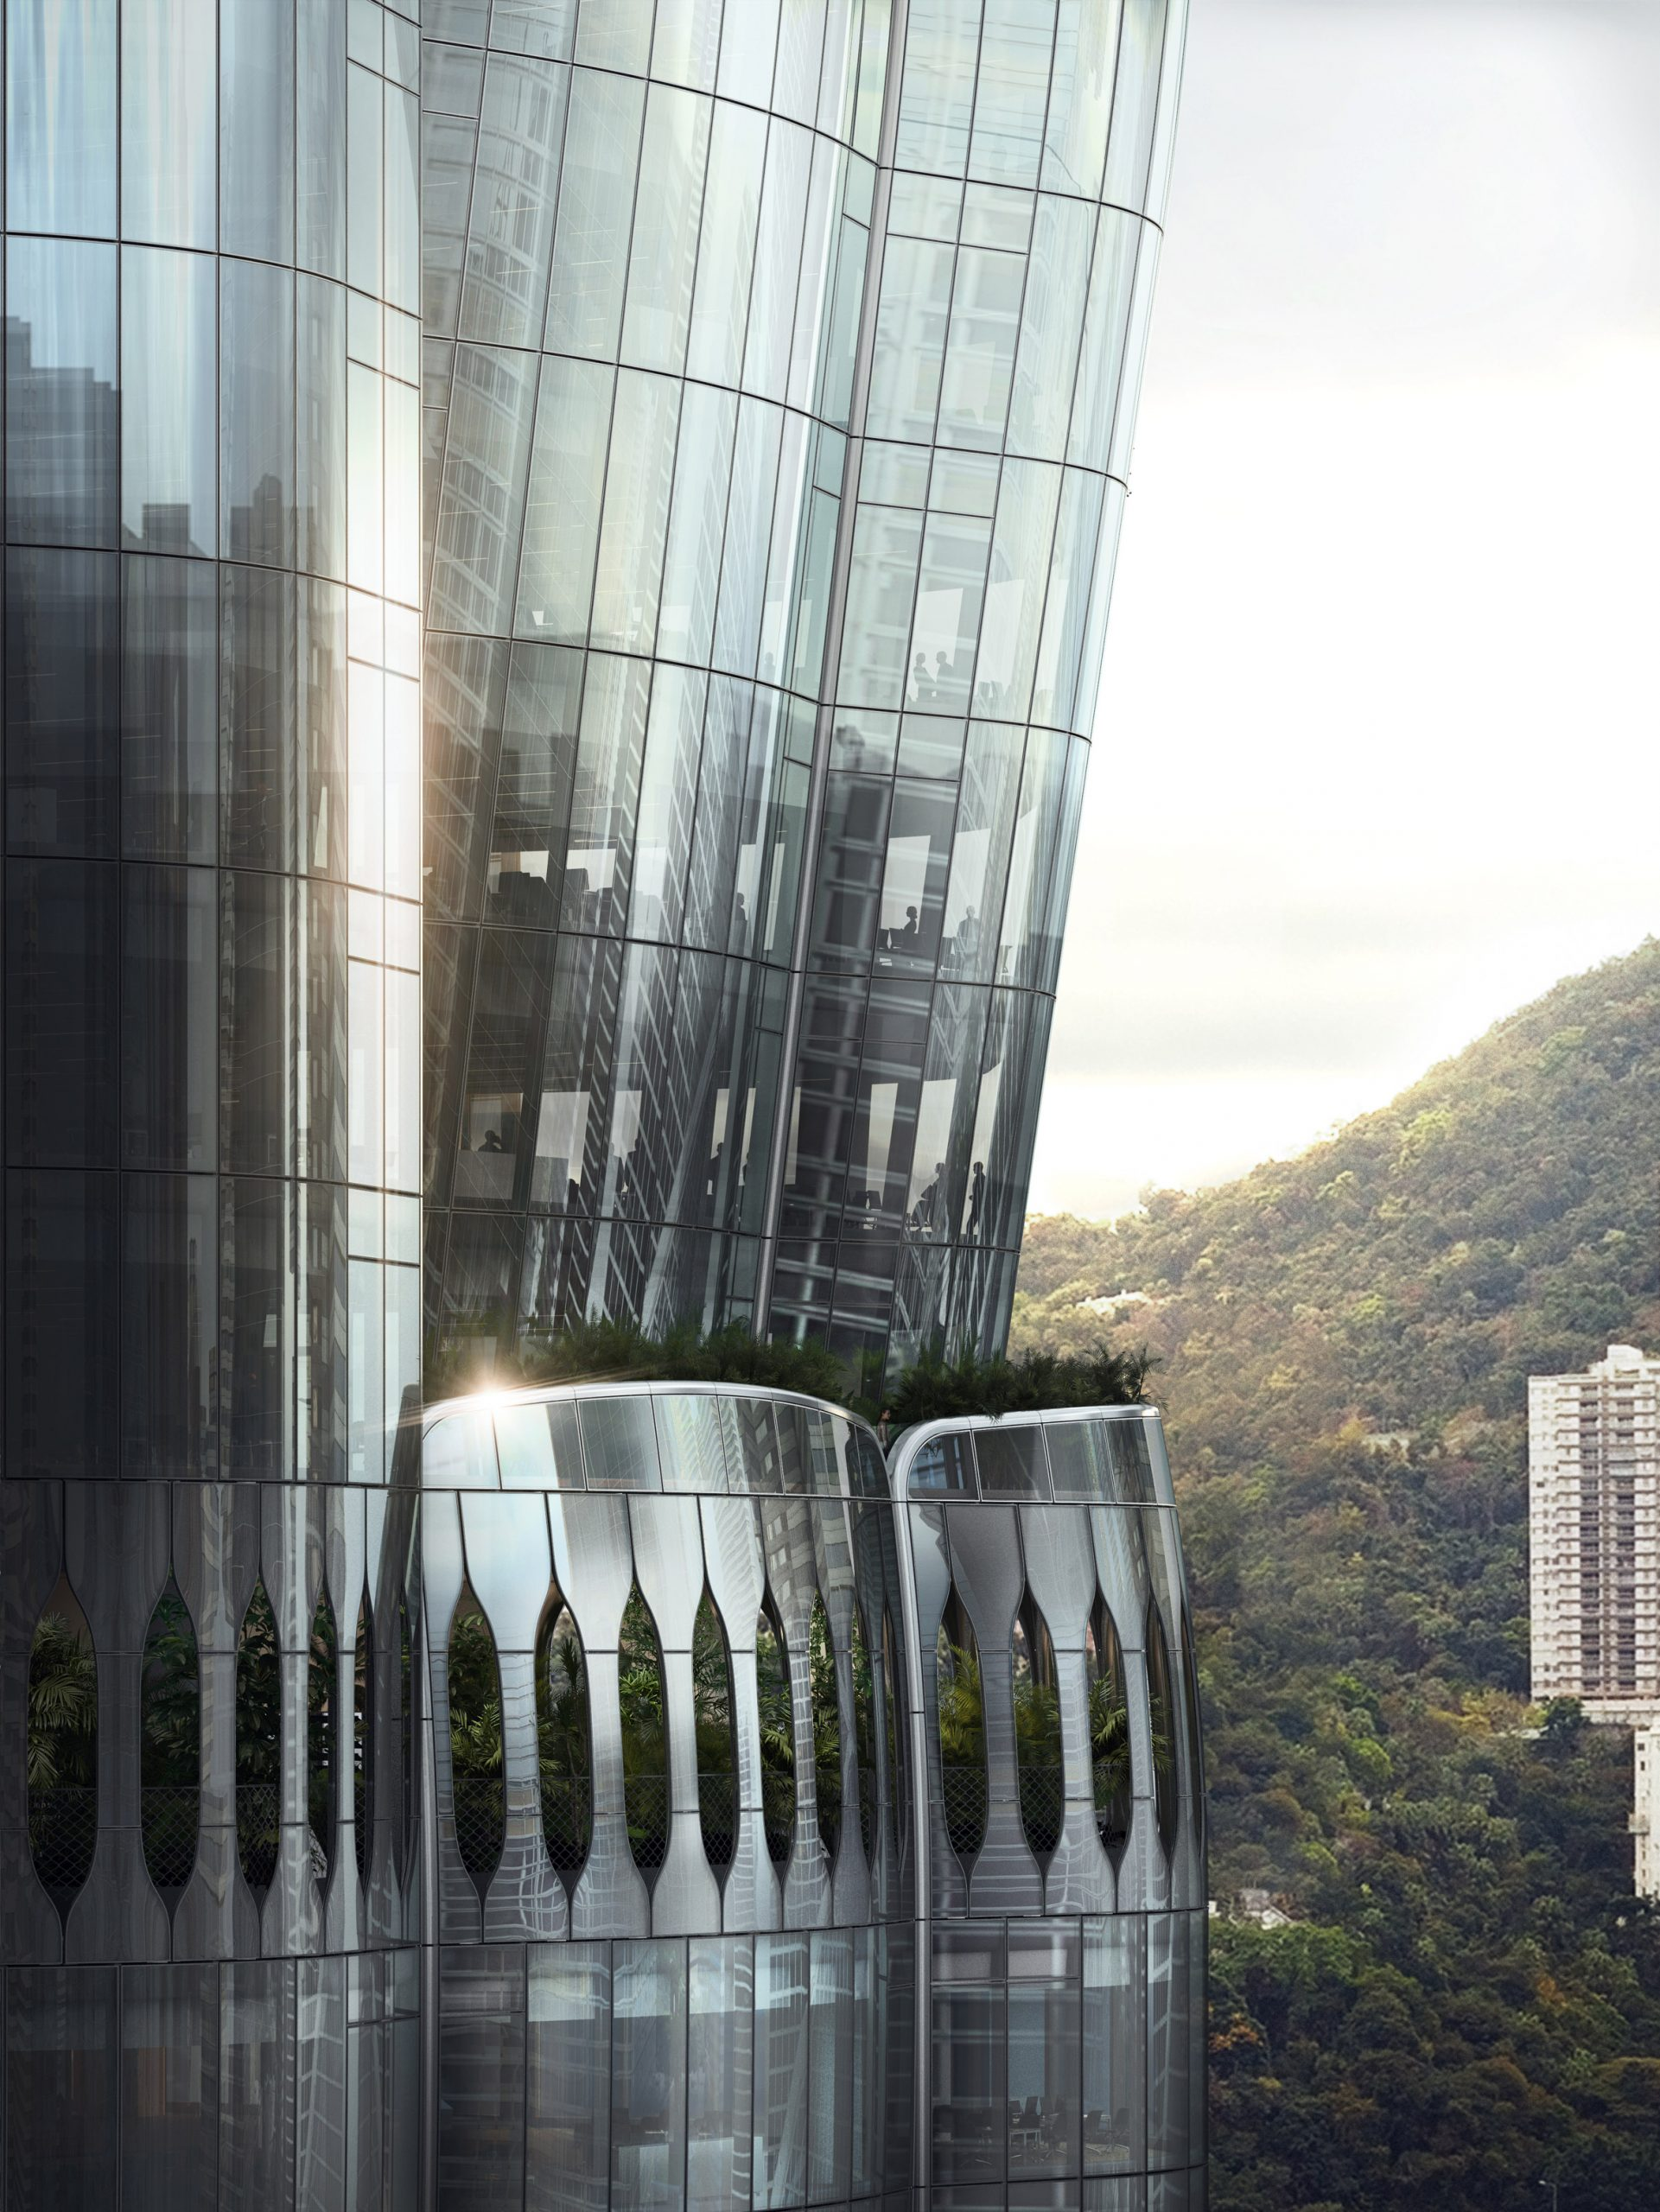 Hong Kong skyscraper at 2 Murray Road with tree-filled balconies